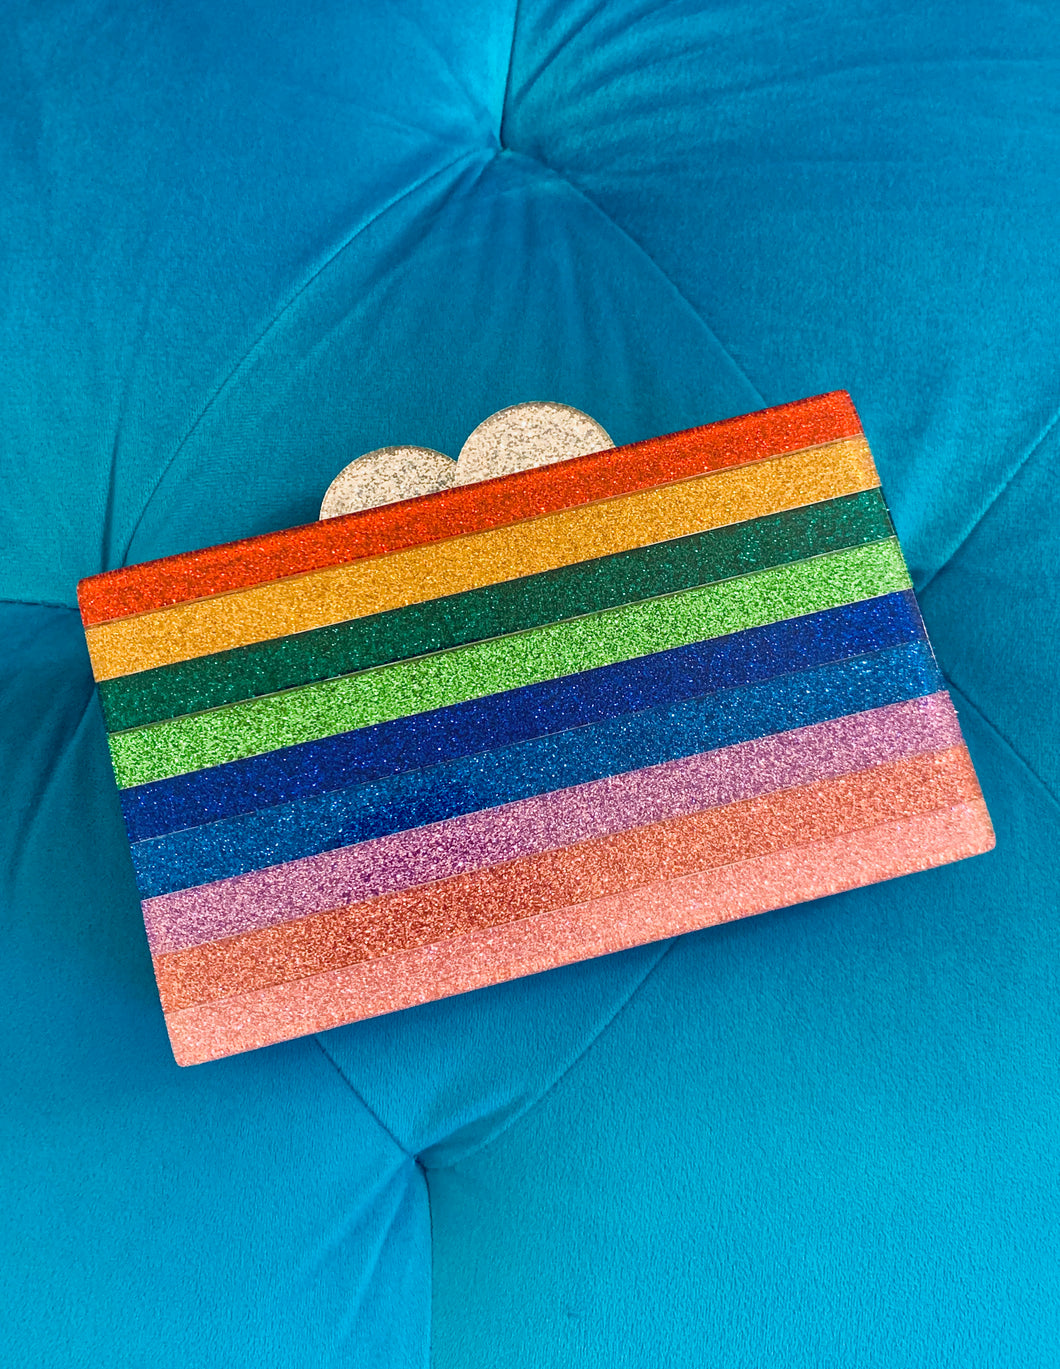 SALE - Acrylic Rainbow Glitter Clutch Purse